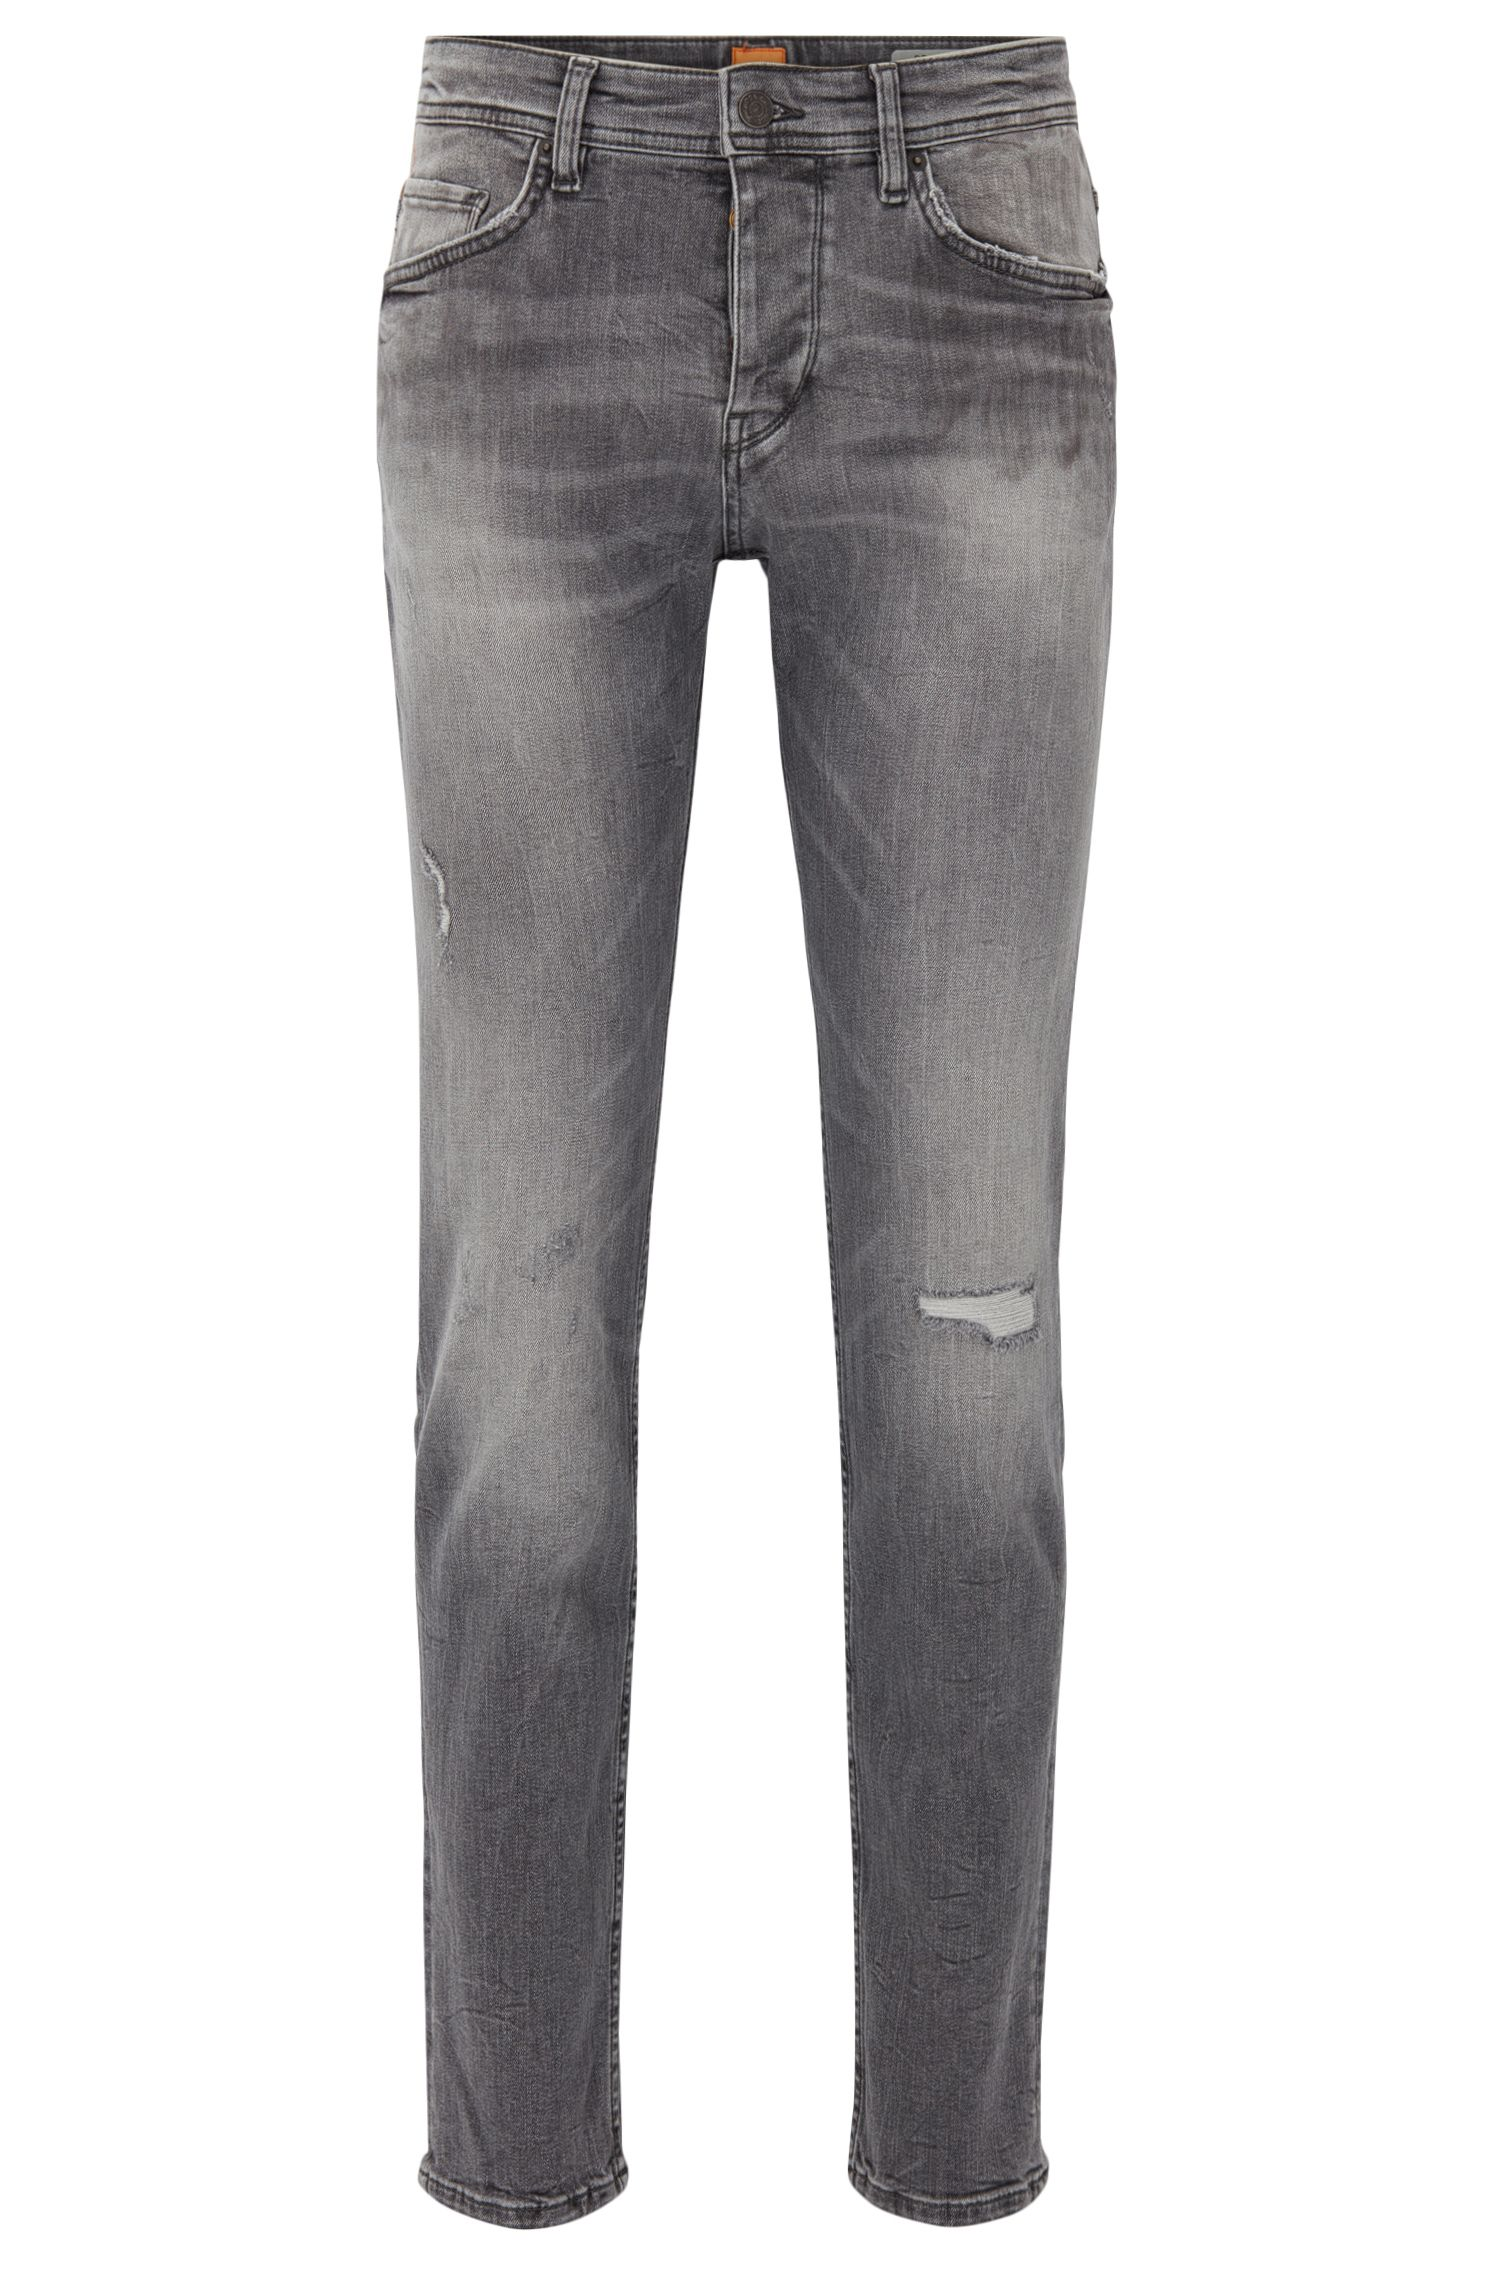 Jeans tapered fit neri in denim elasticizzato riciclato